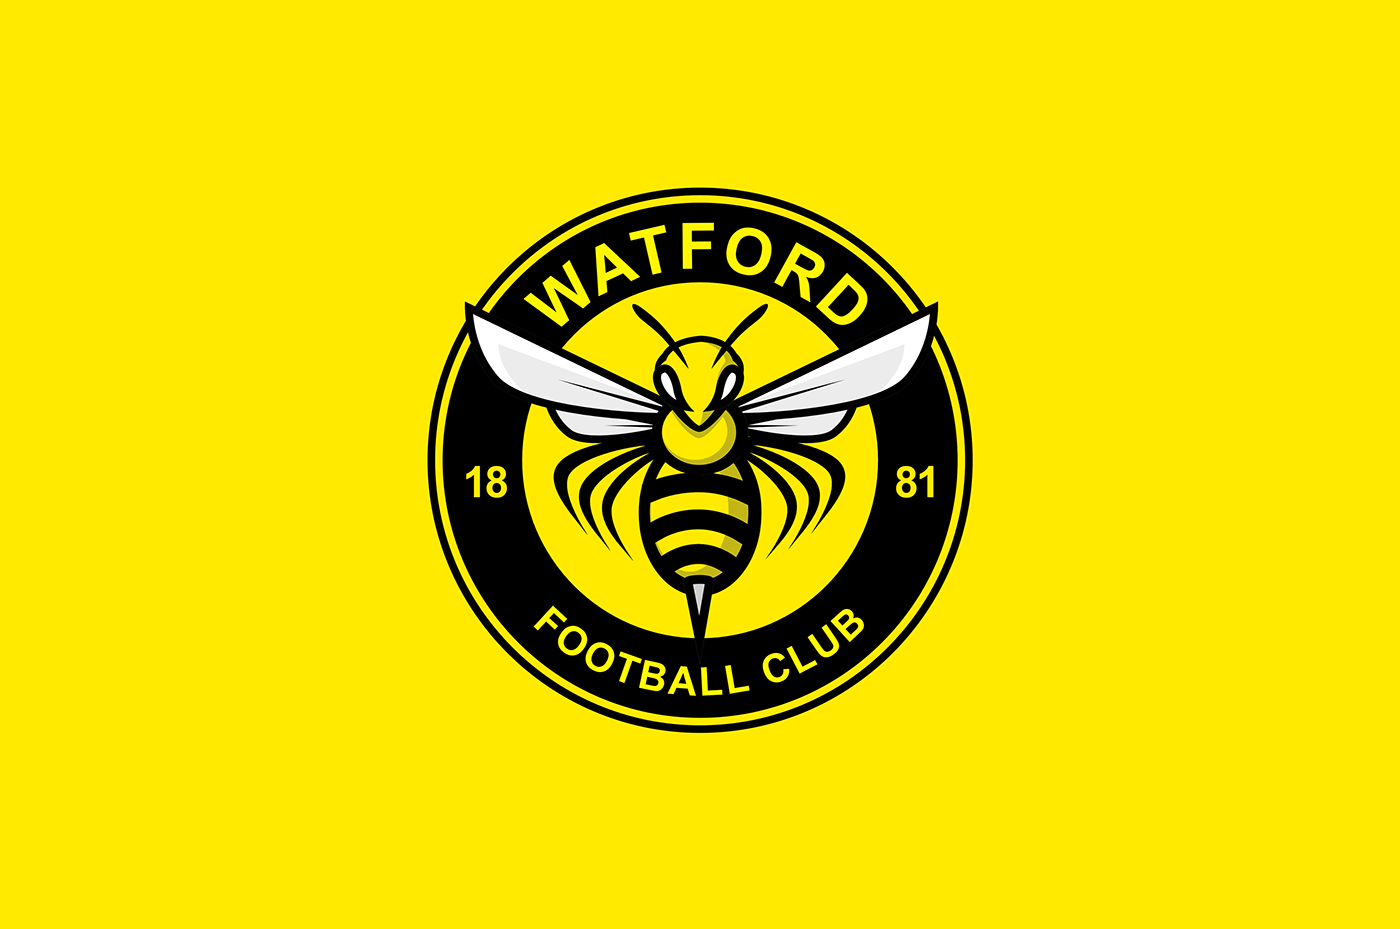 Unofficial rebrand of Watford